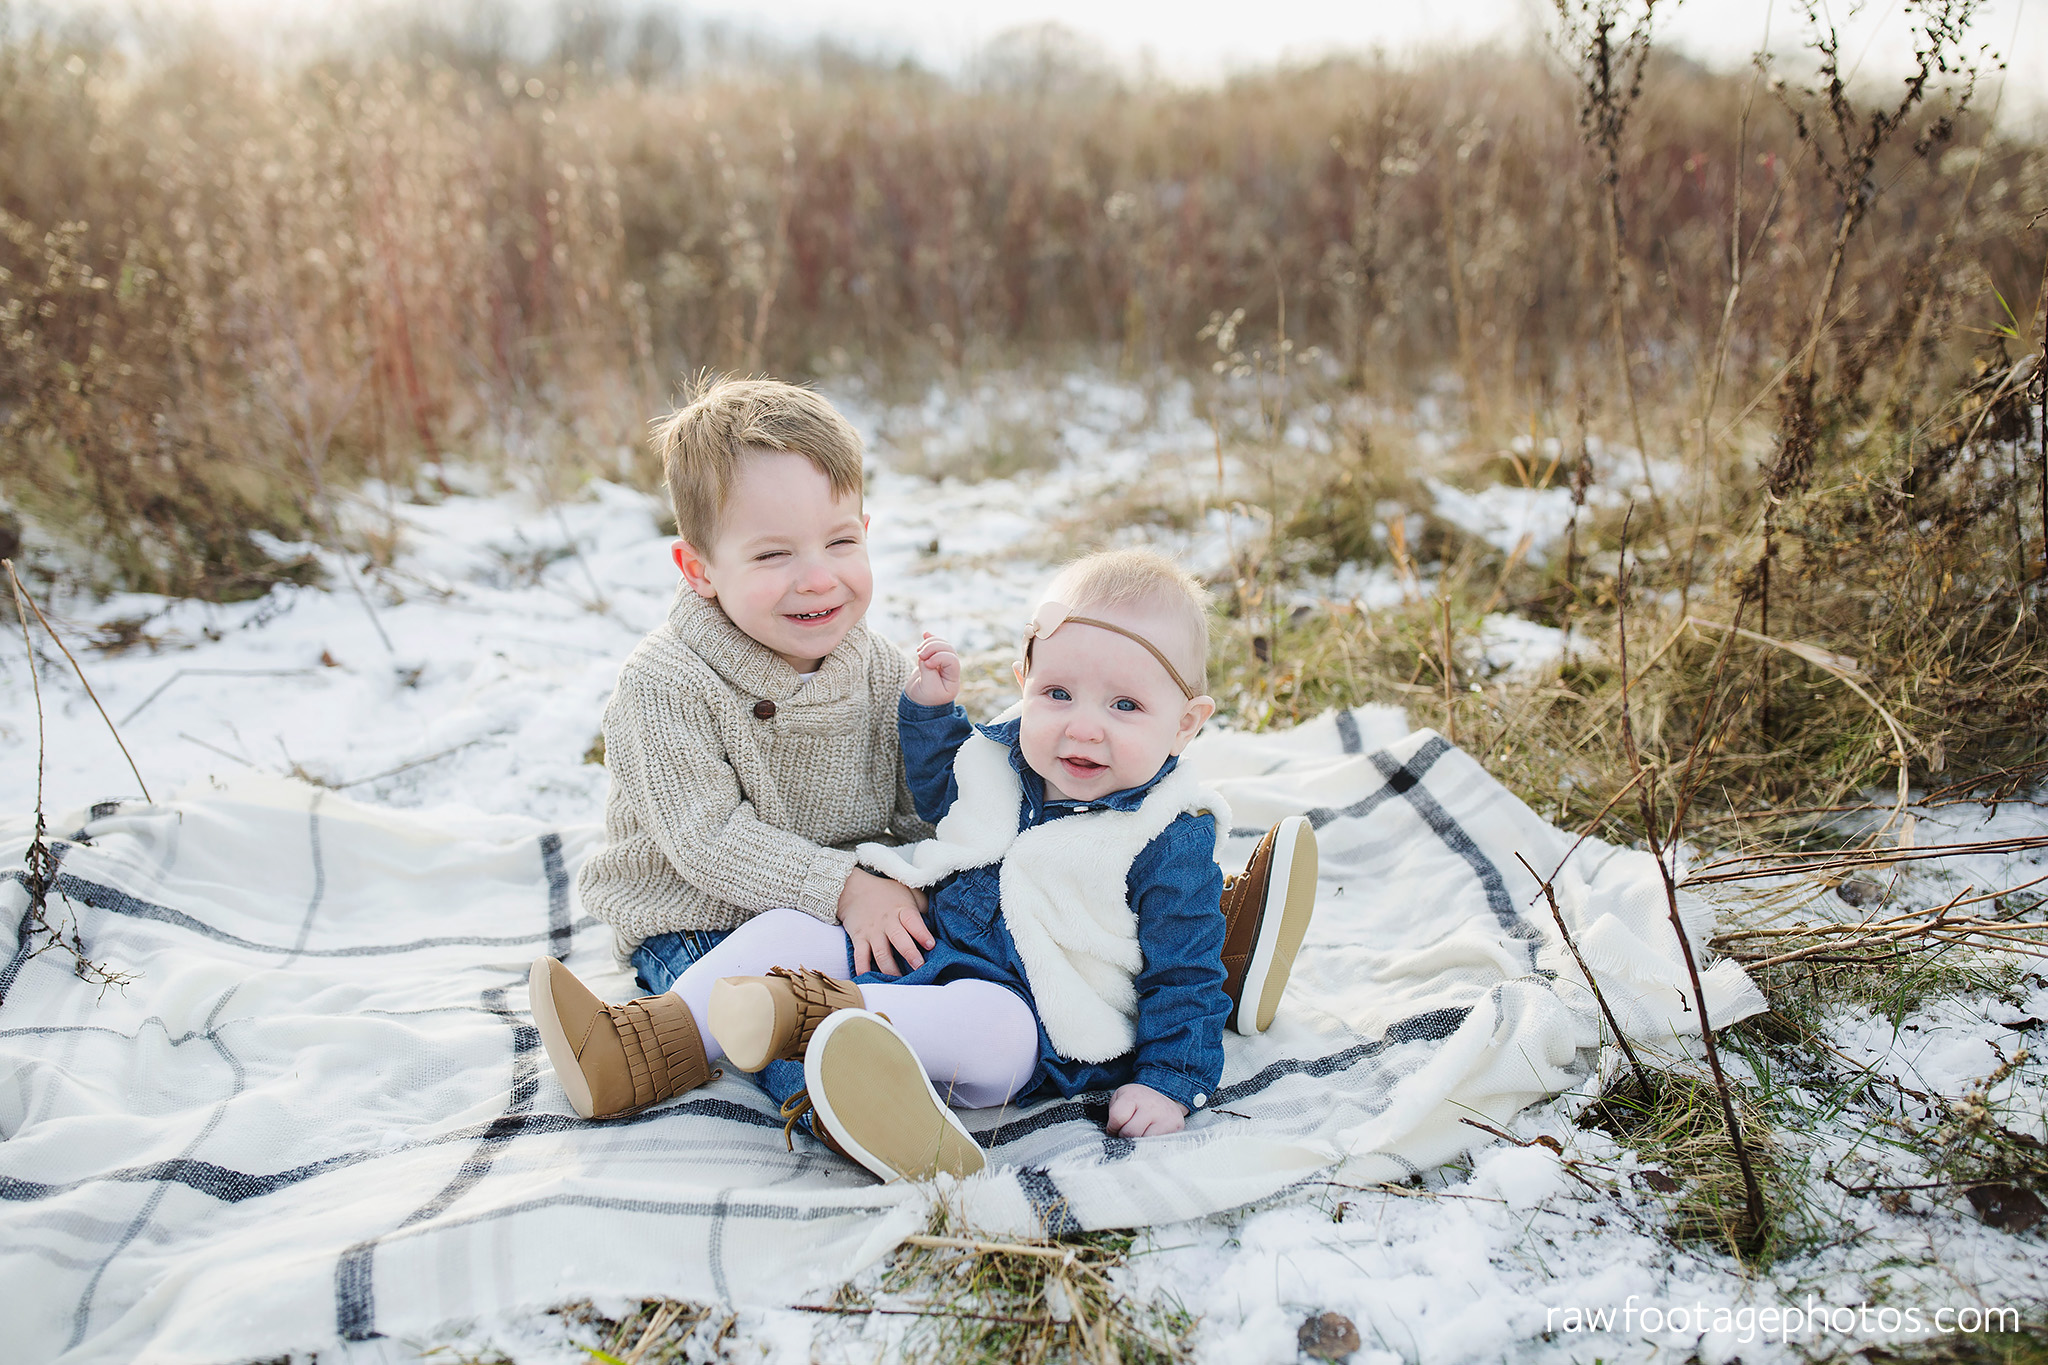 london_ontario_family_photographer-greenhouse_photos-winter_field_photos-raw_footage_photography006.jpg